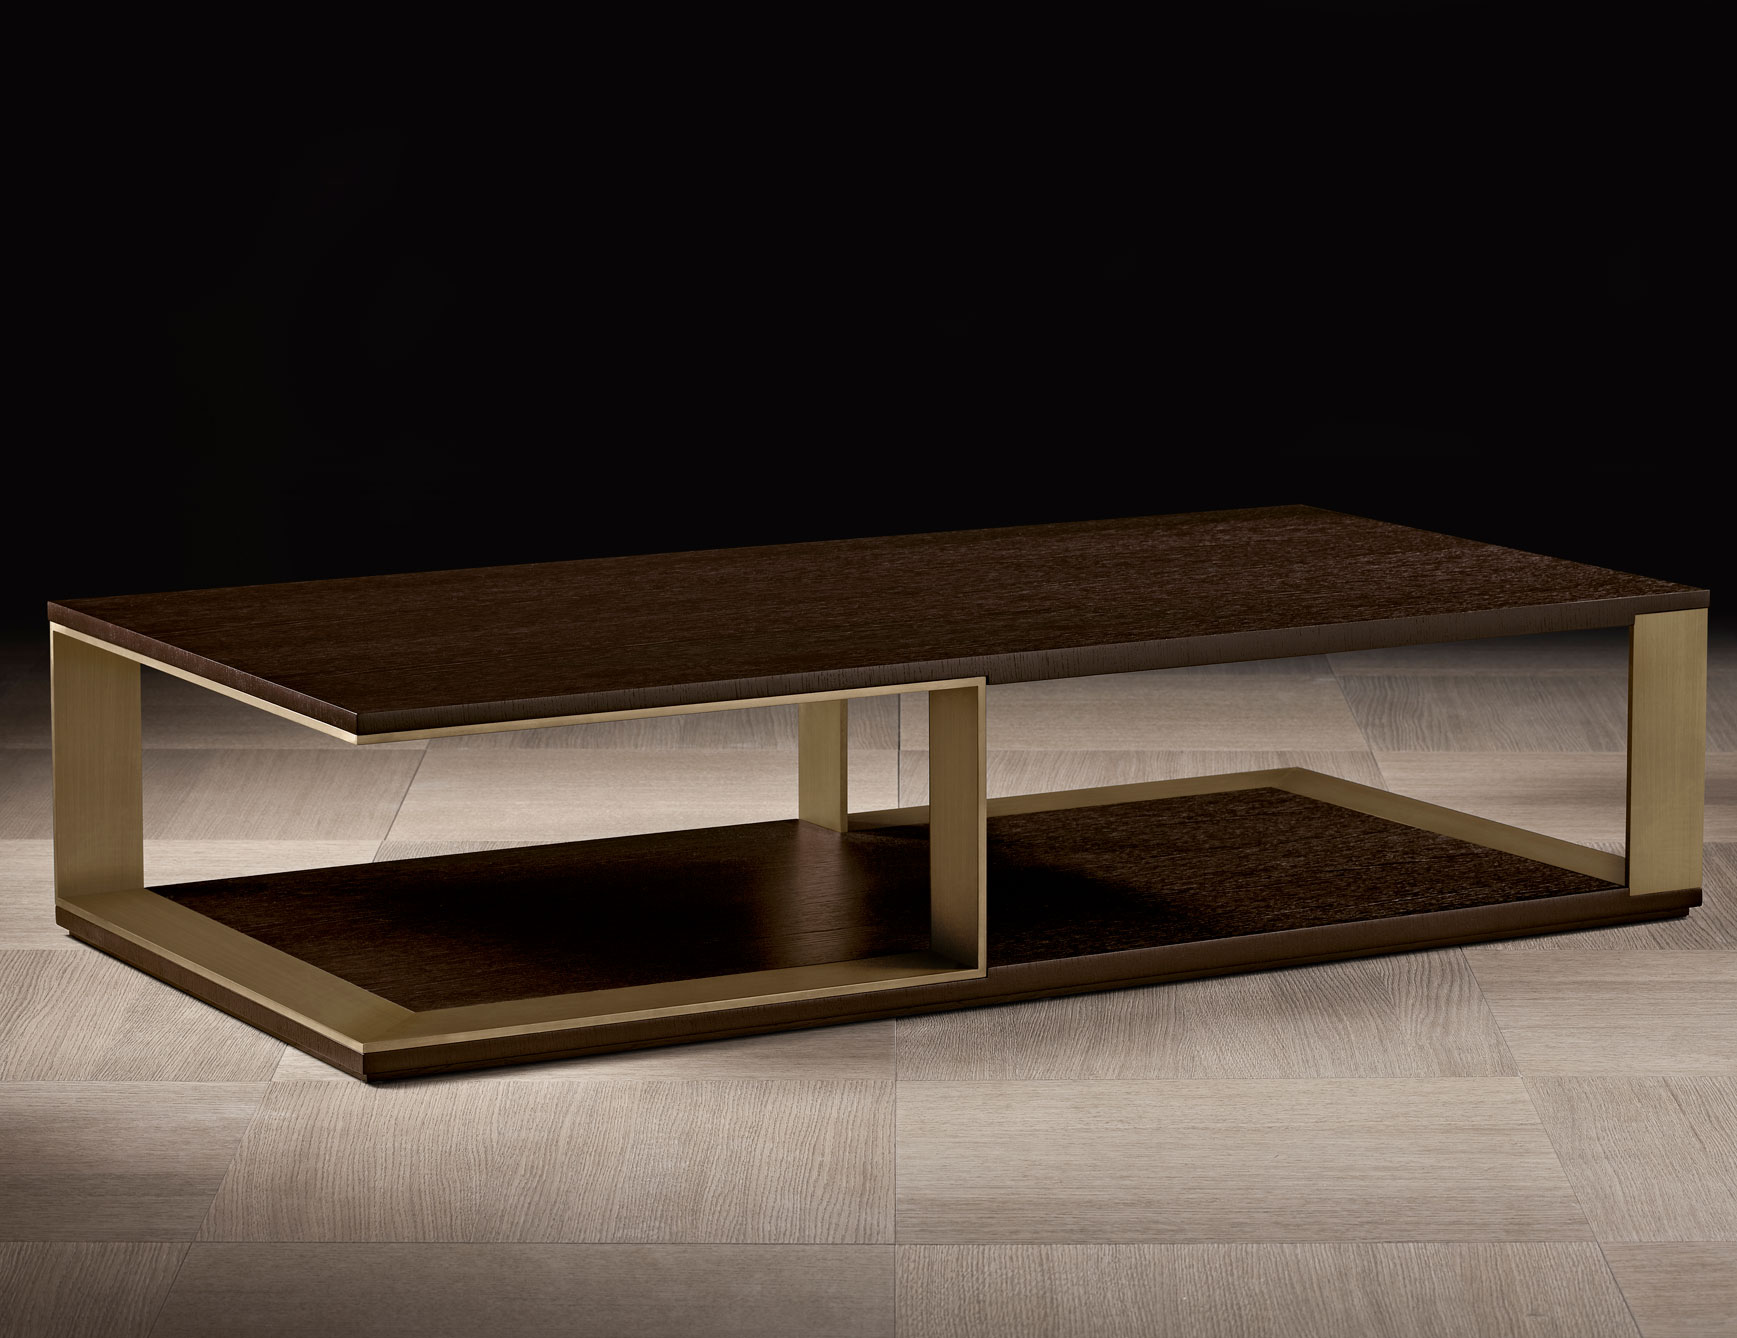 High End Coffee Tables to Create an Interesting Look of a Living